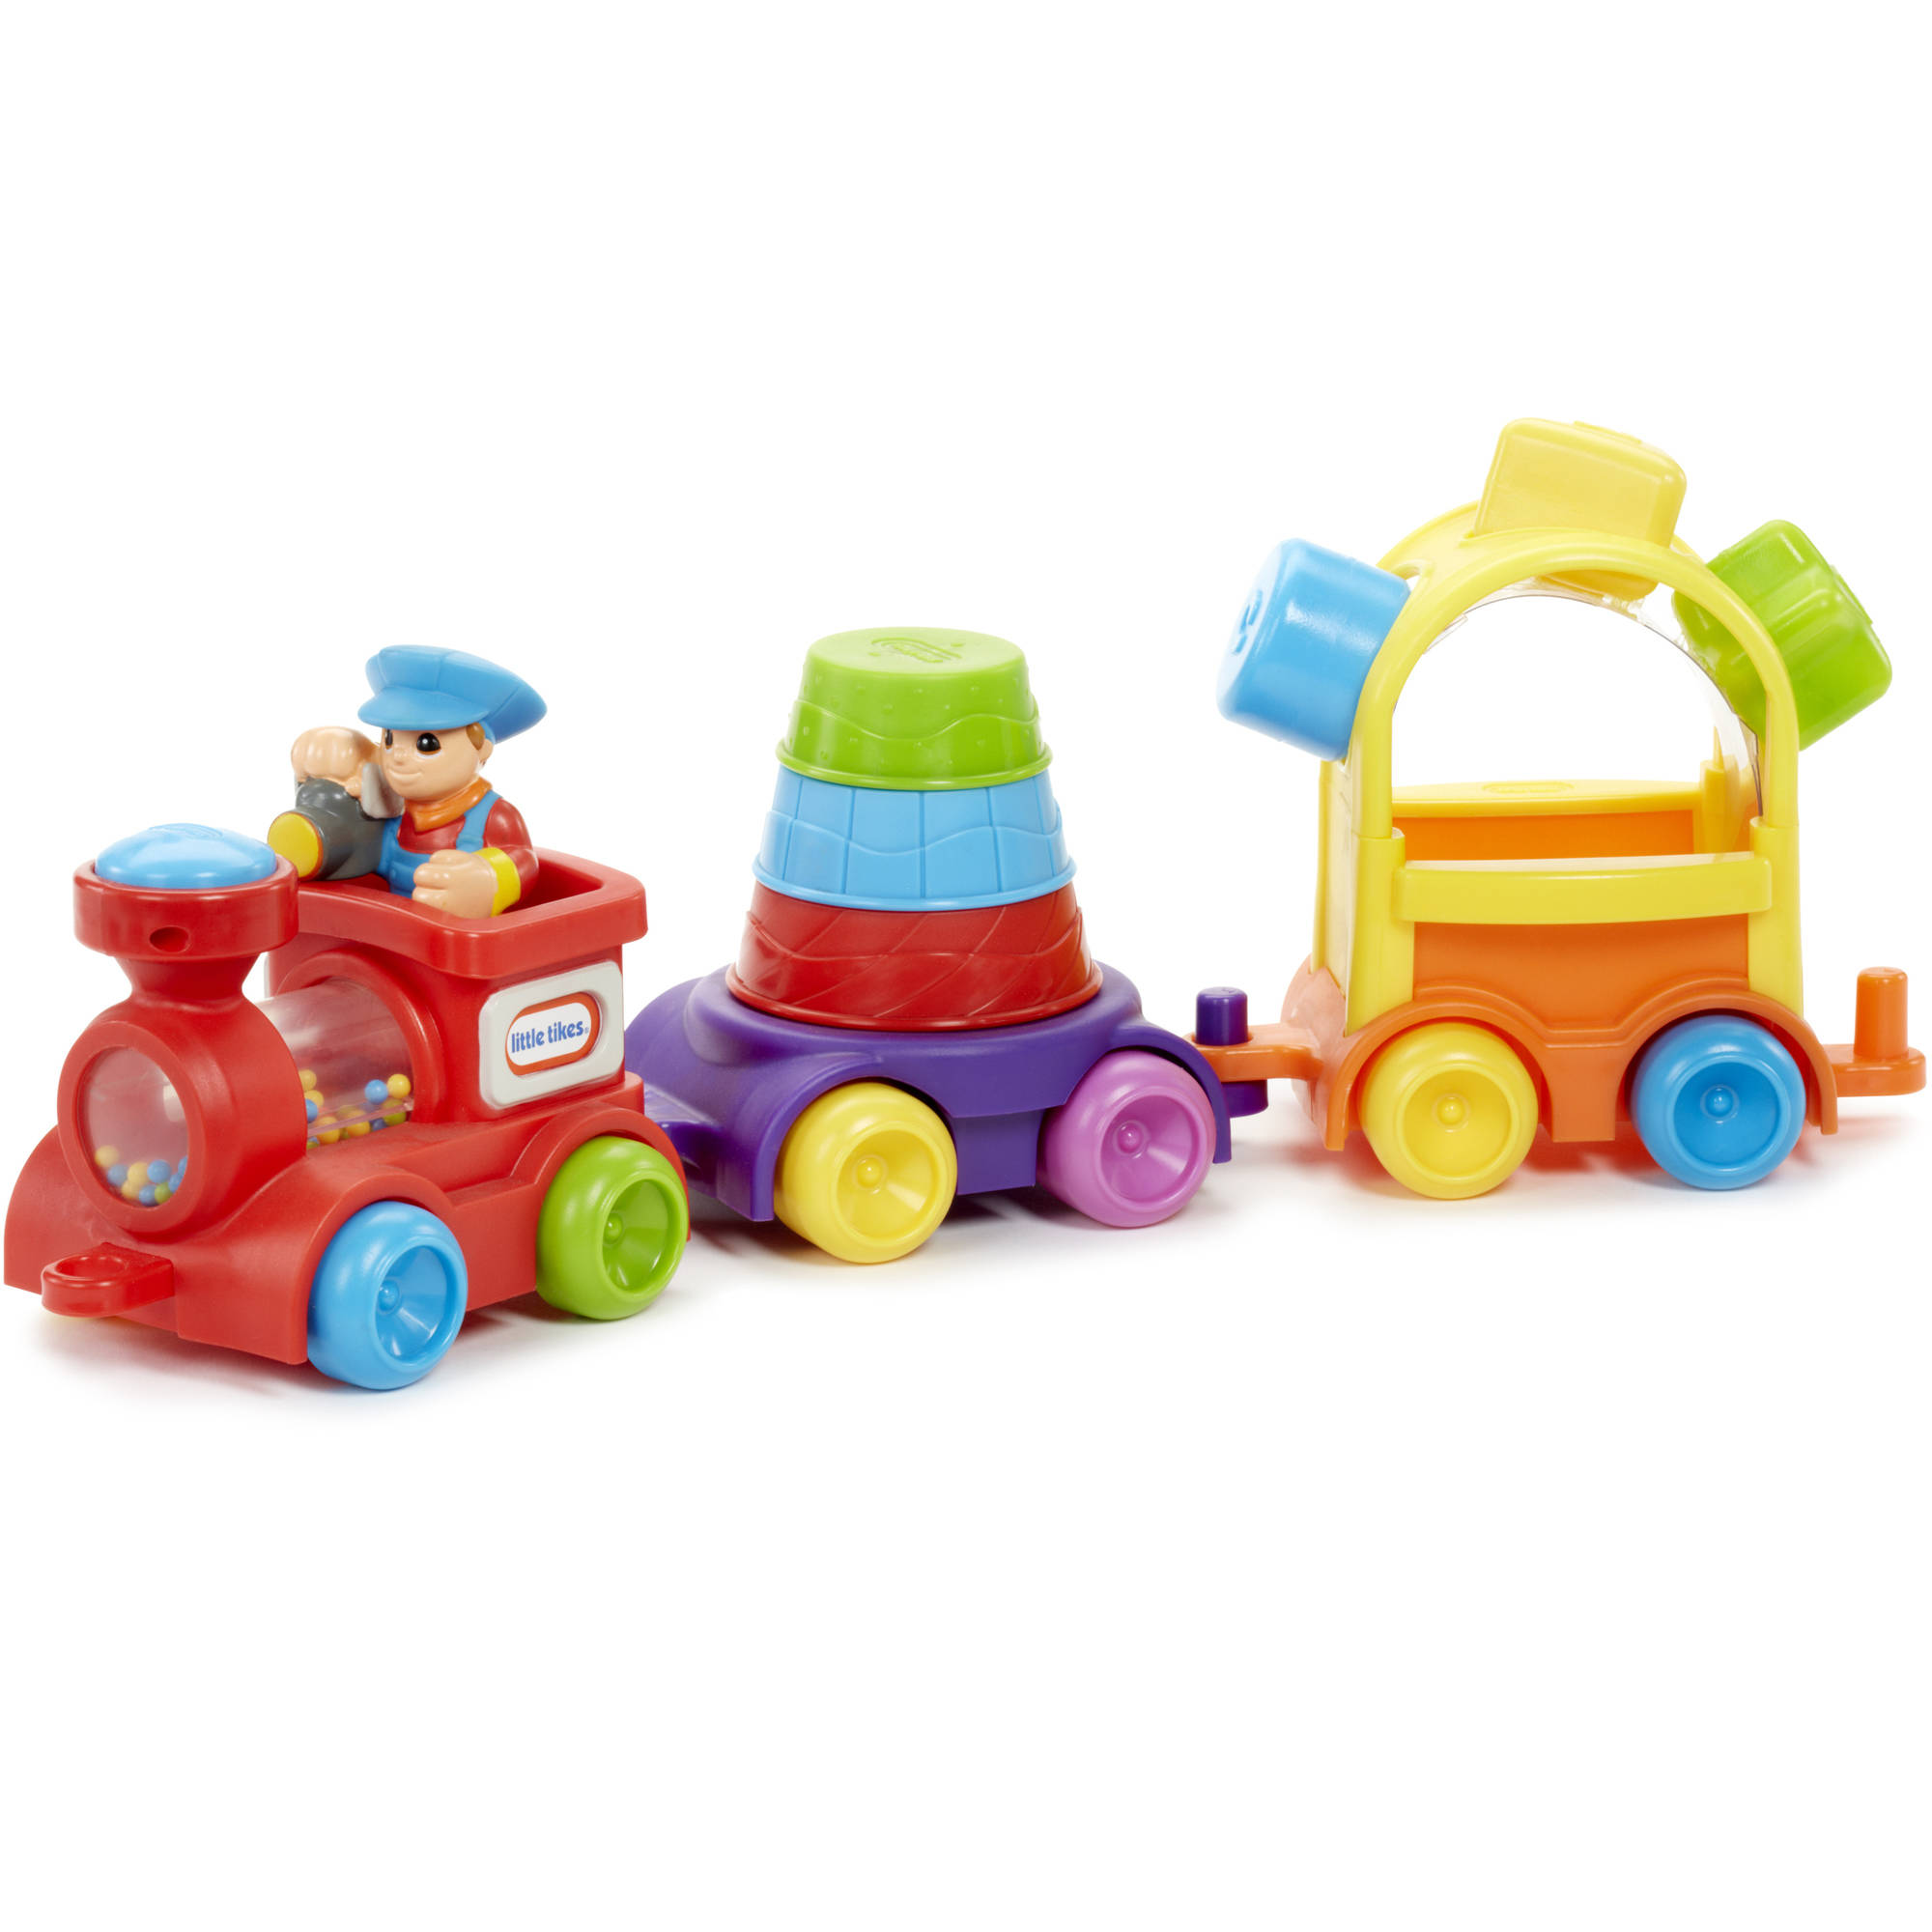 Little Tikes 3-in-1 Sort and Stack Train by Little Tikes